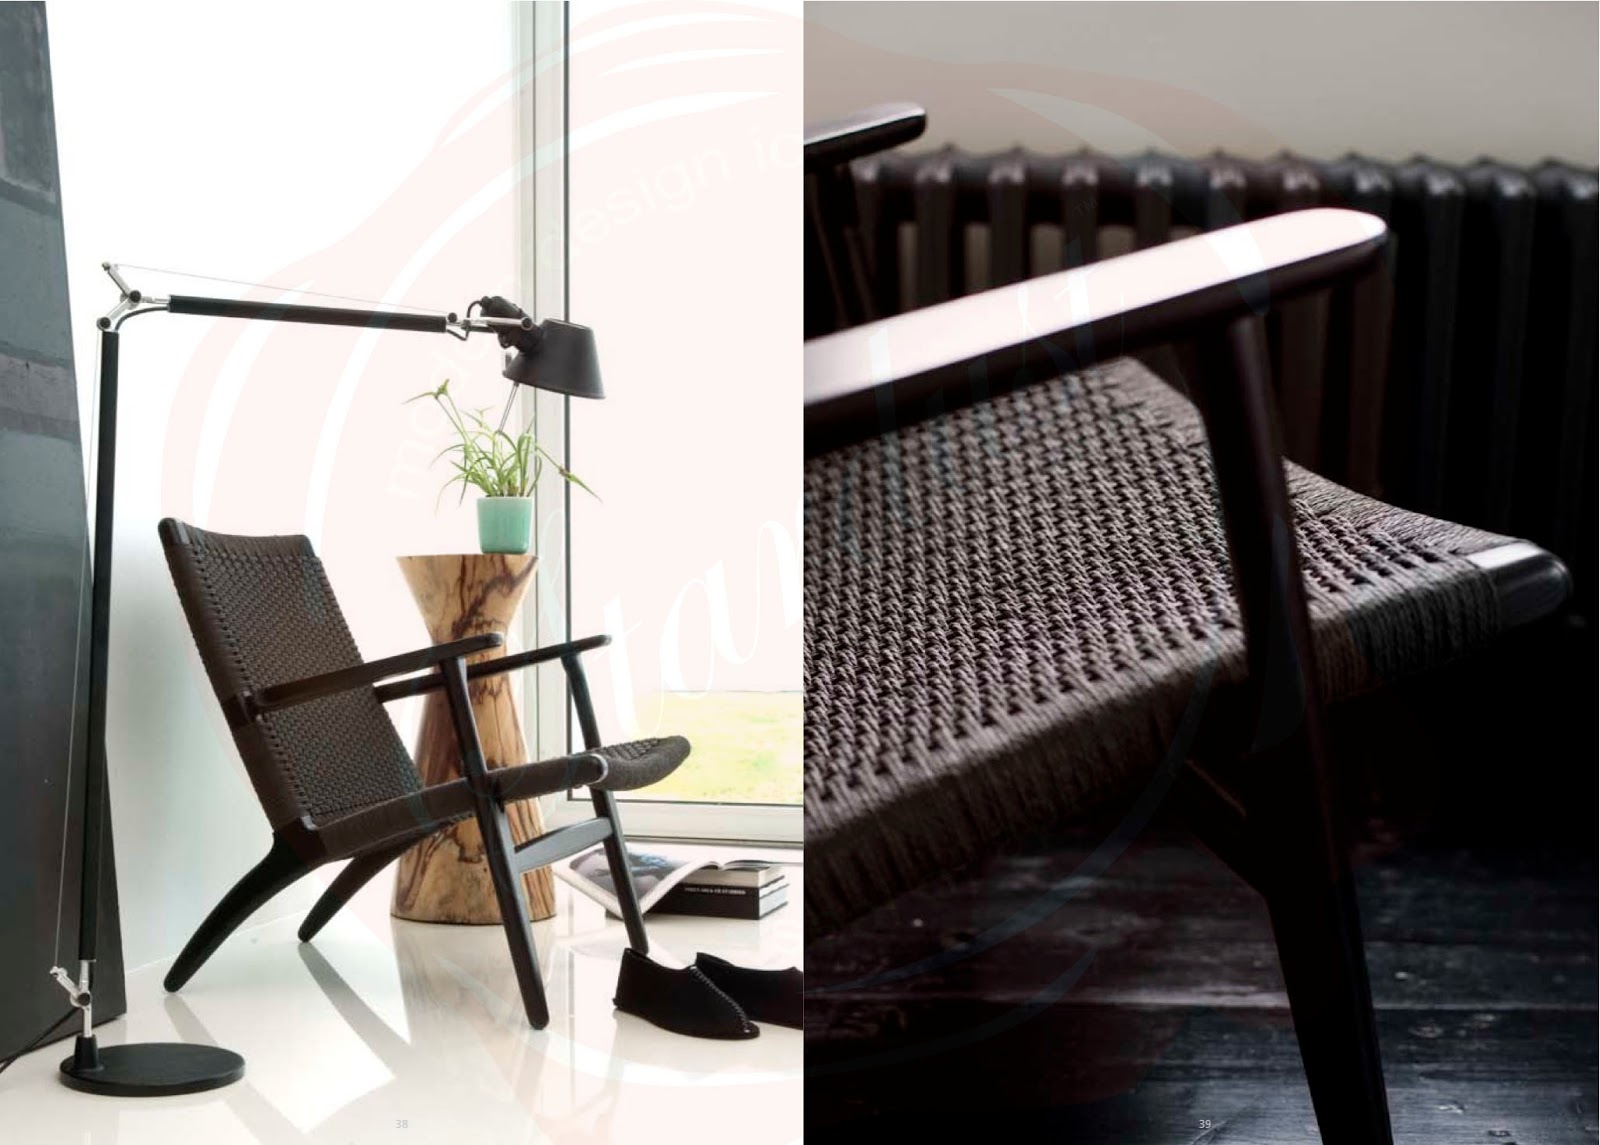 Tolomeo Floor Lamp - Home Design Ideas and Pictures